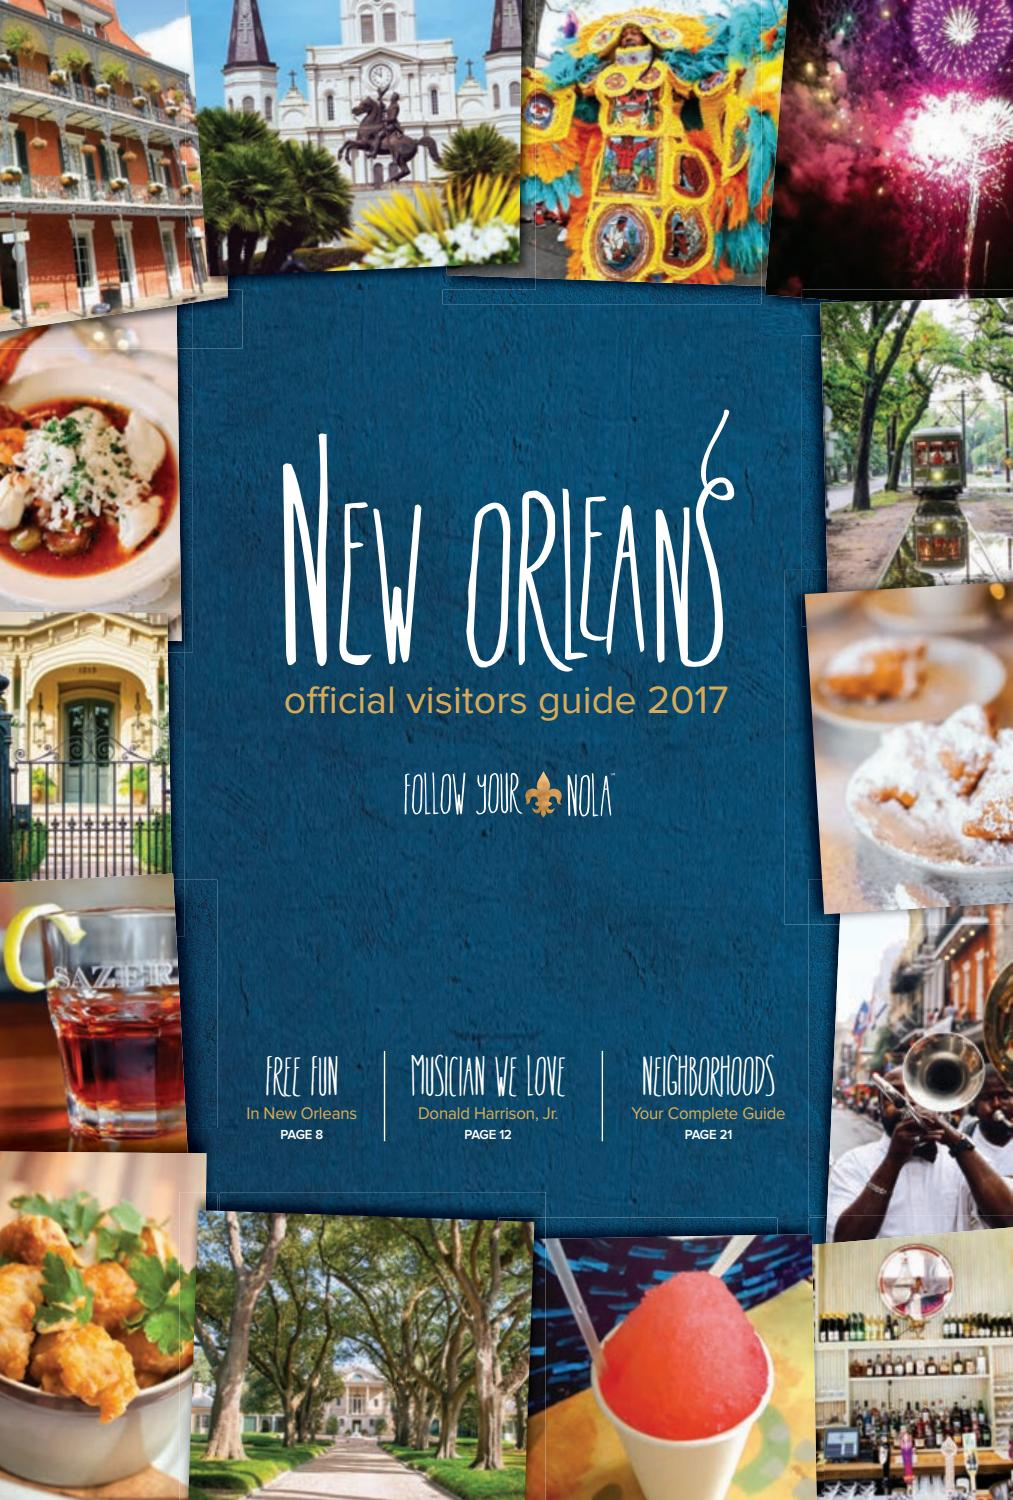 hight resolution of new orleans visitors guide 2017 july dec by new orleans tourism issuu